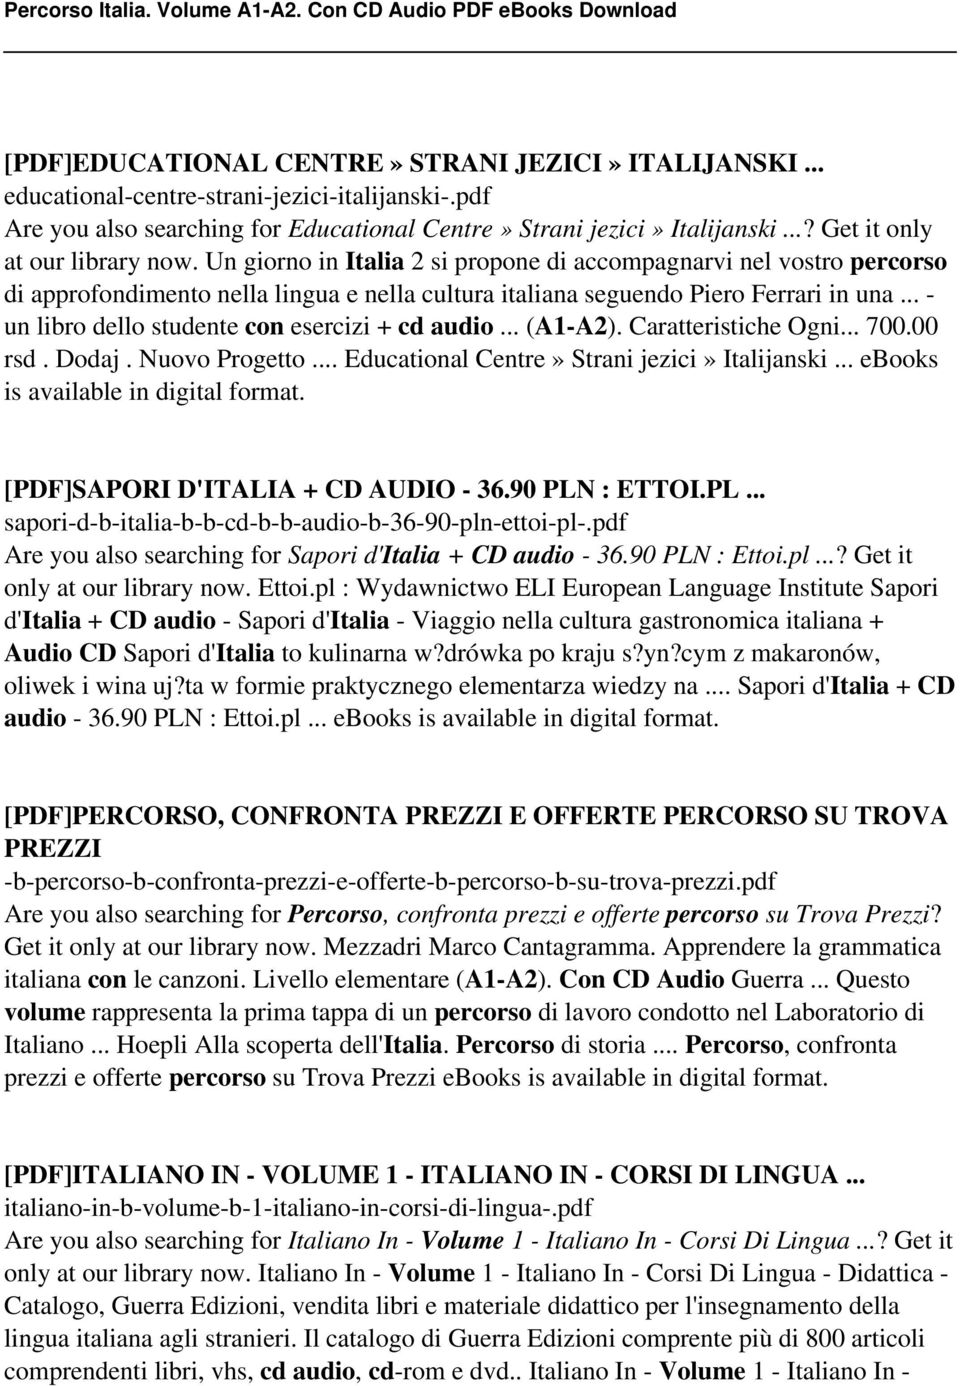 Percorso italia volume a1 a2 con cd audio pdf pdf un libro dello studente con esercizi cd audio fandeluxe Gallery